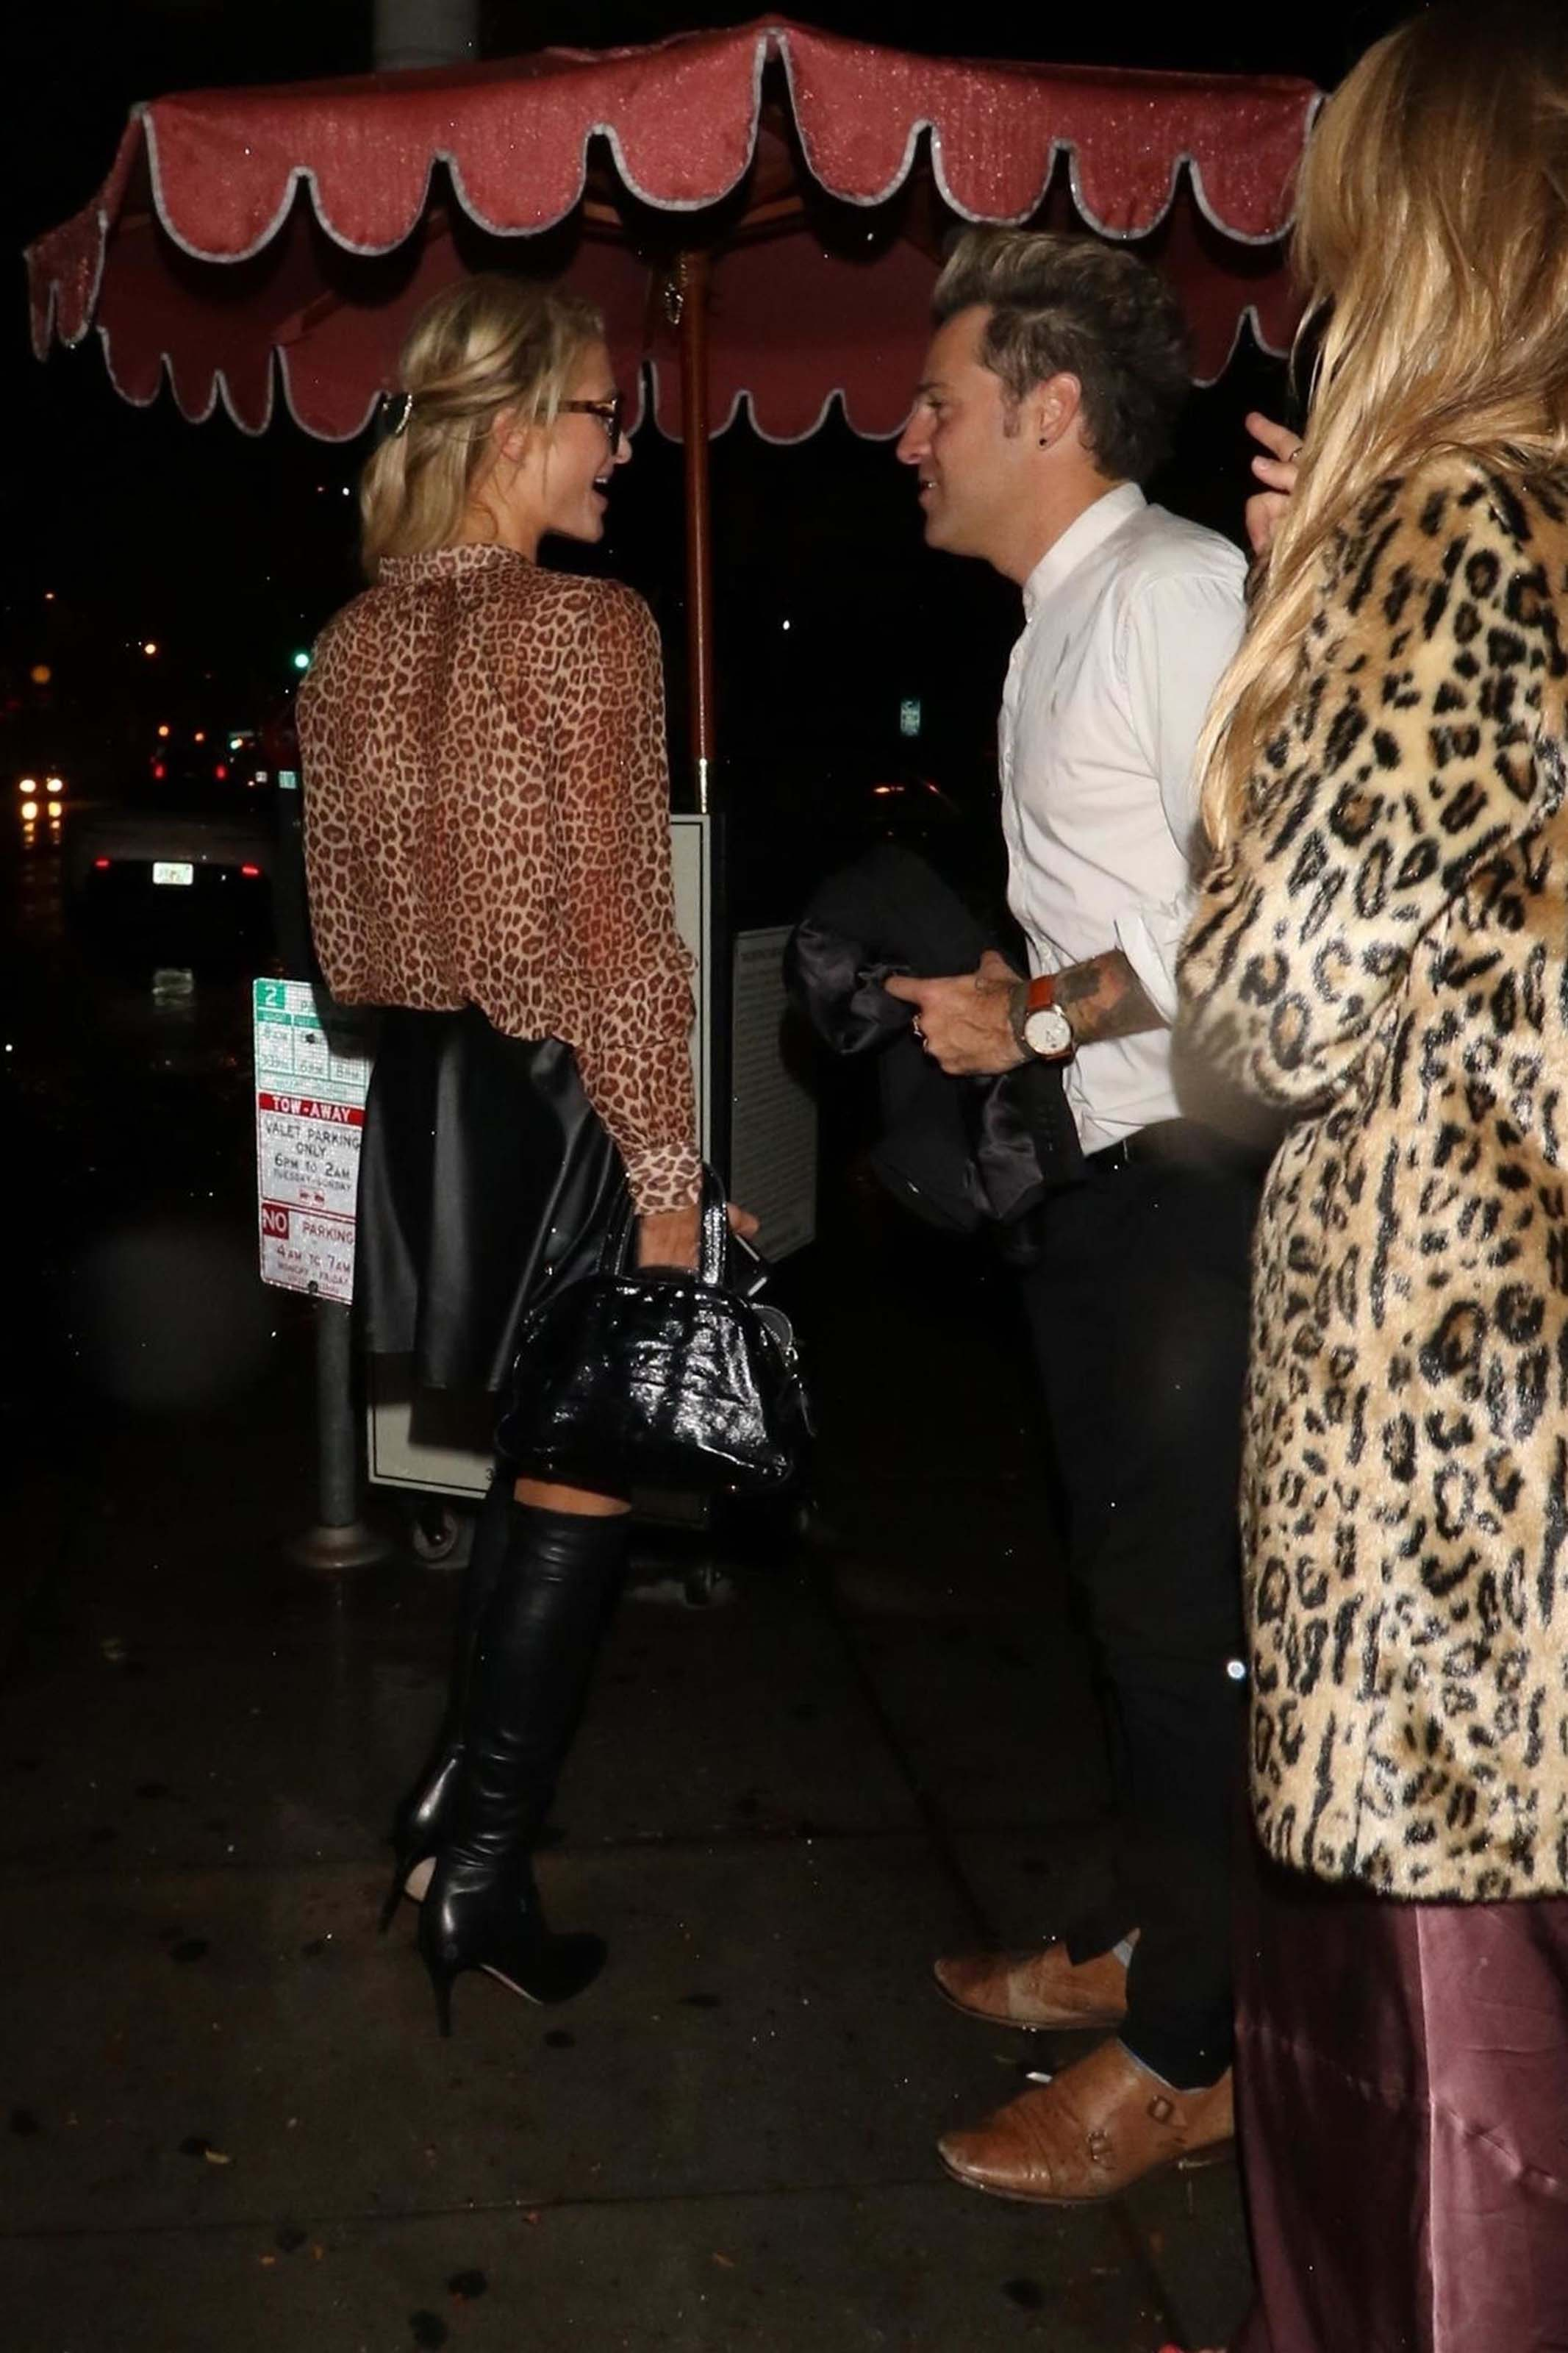 Paris Hilton leaving at Delilah Nightclub